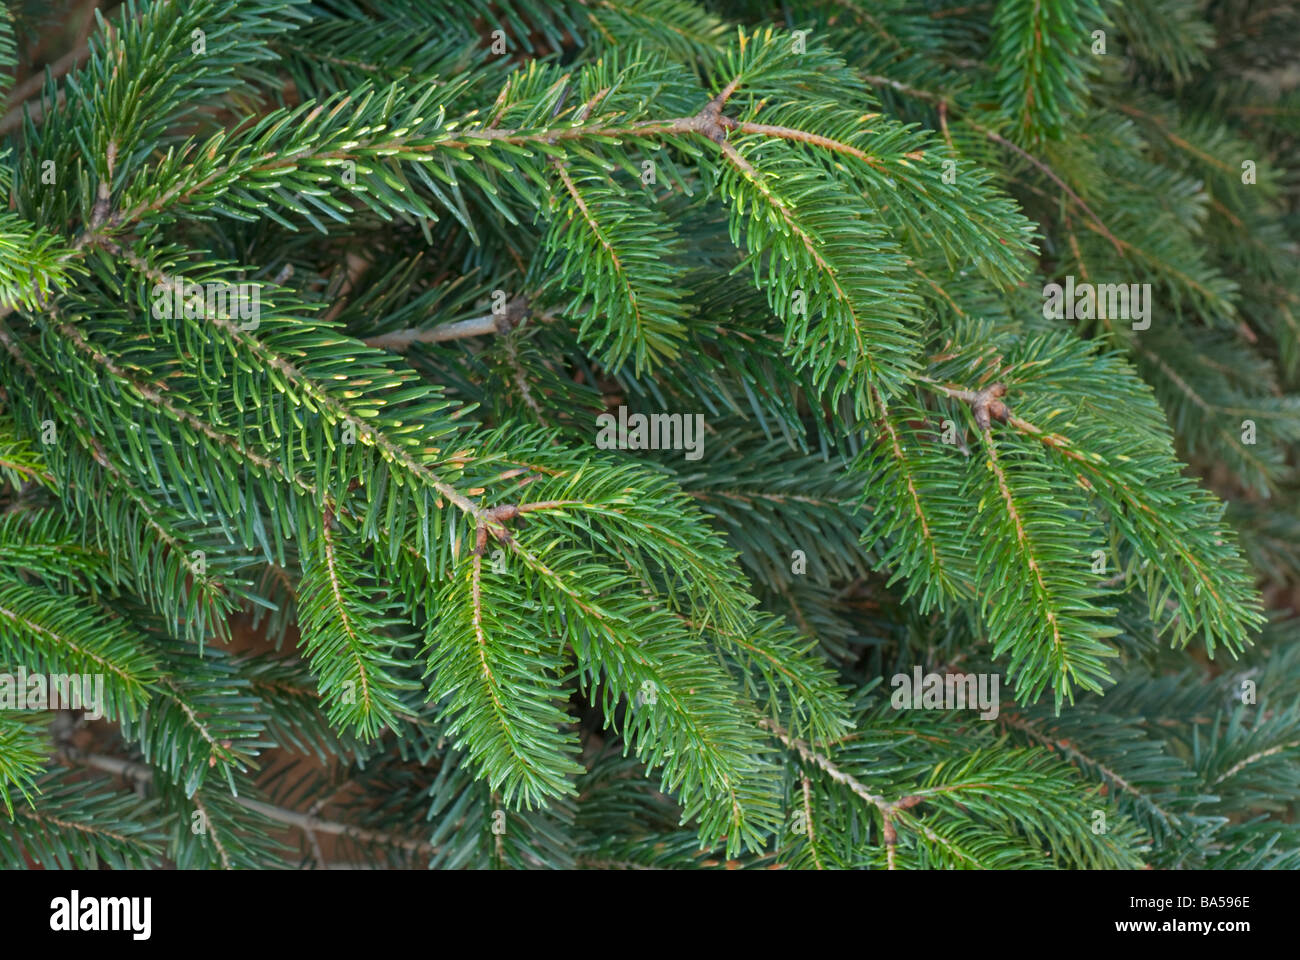 Pine Tree Abies costeriana, Abetaceae - Stock Image